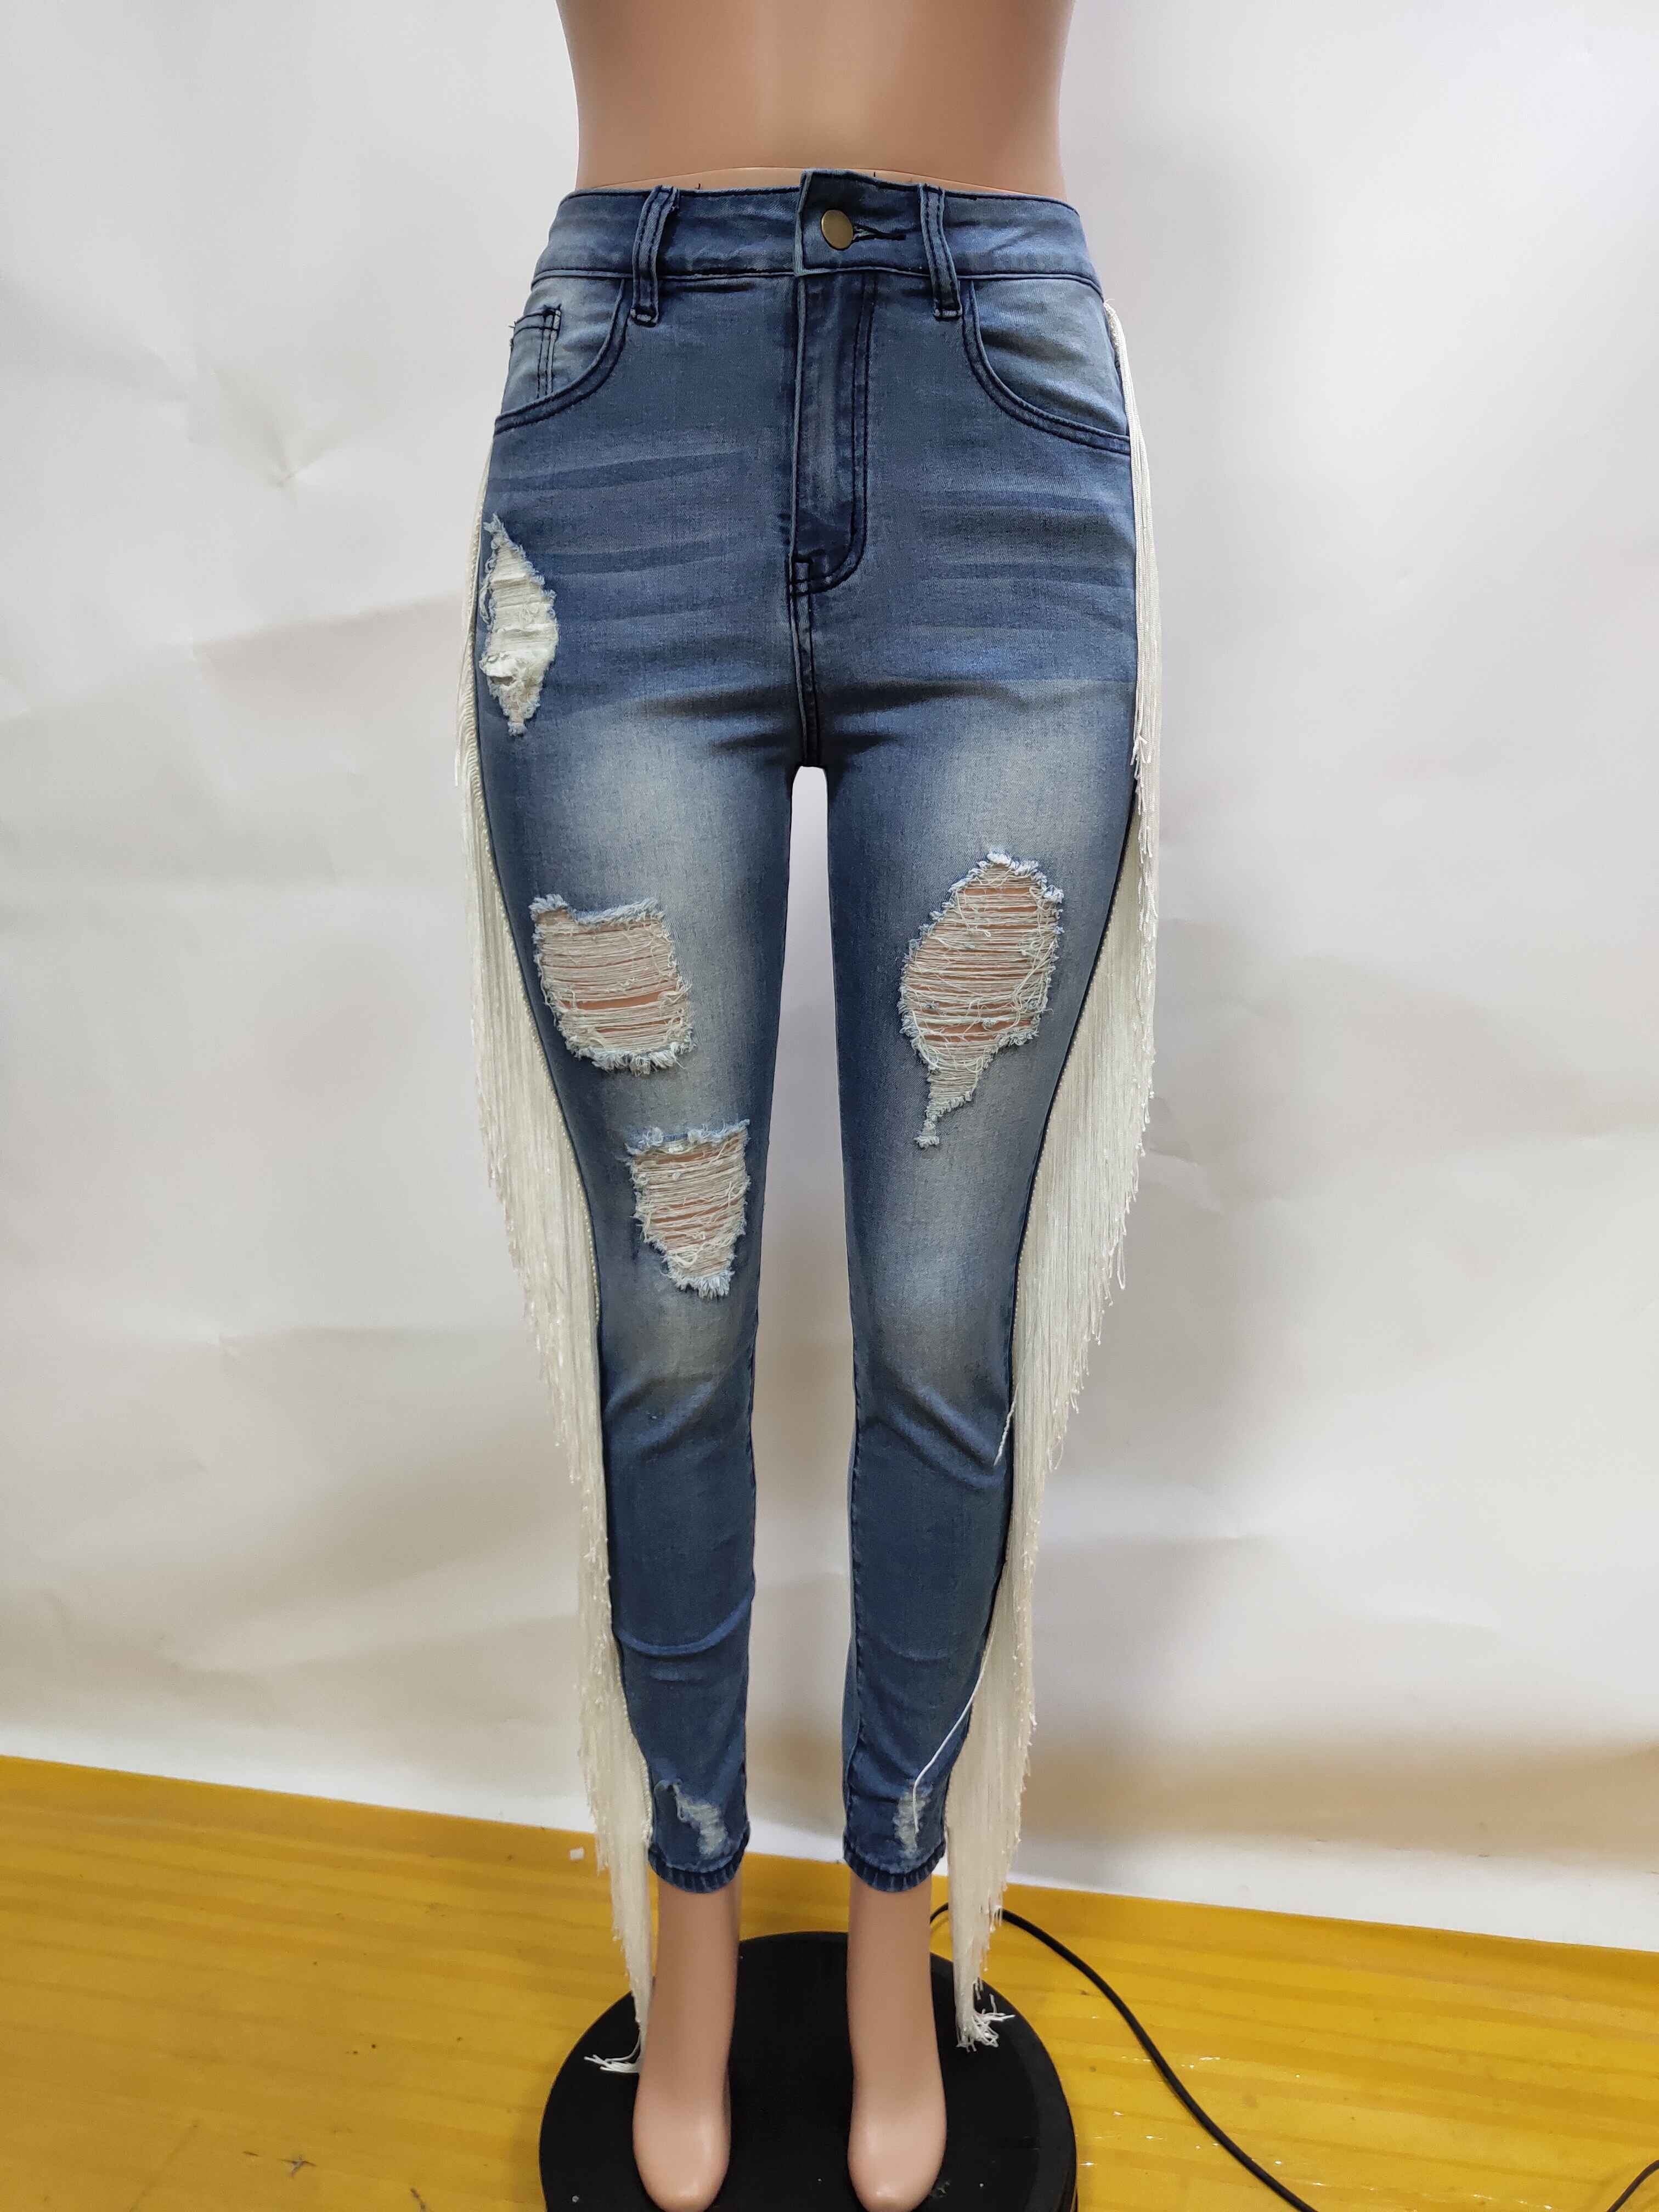 Adogirl Distressed Tassel Jeans 2019 Autumn New Women Fashion Holes Denim Pants Casual Trousers Sexy Night Club Jeans Streetwear Jeans Women Bottom ! Plus Size Women's Clothing & Accessories